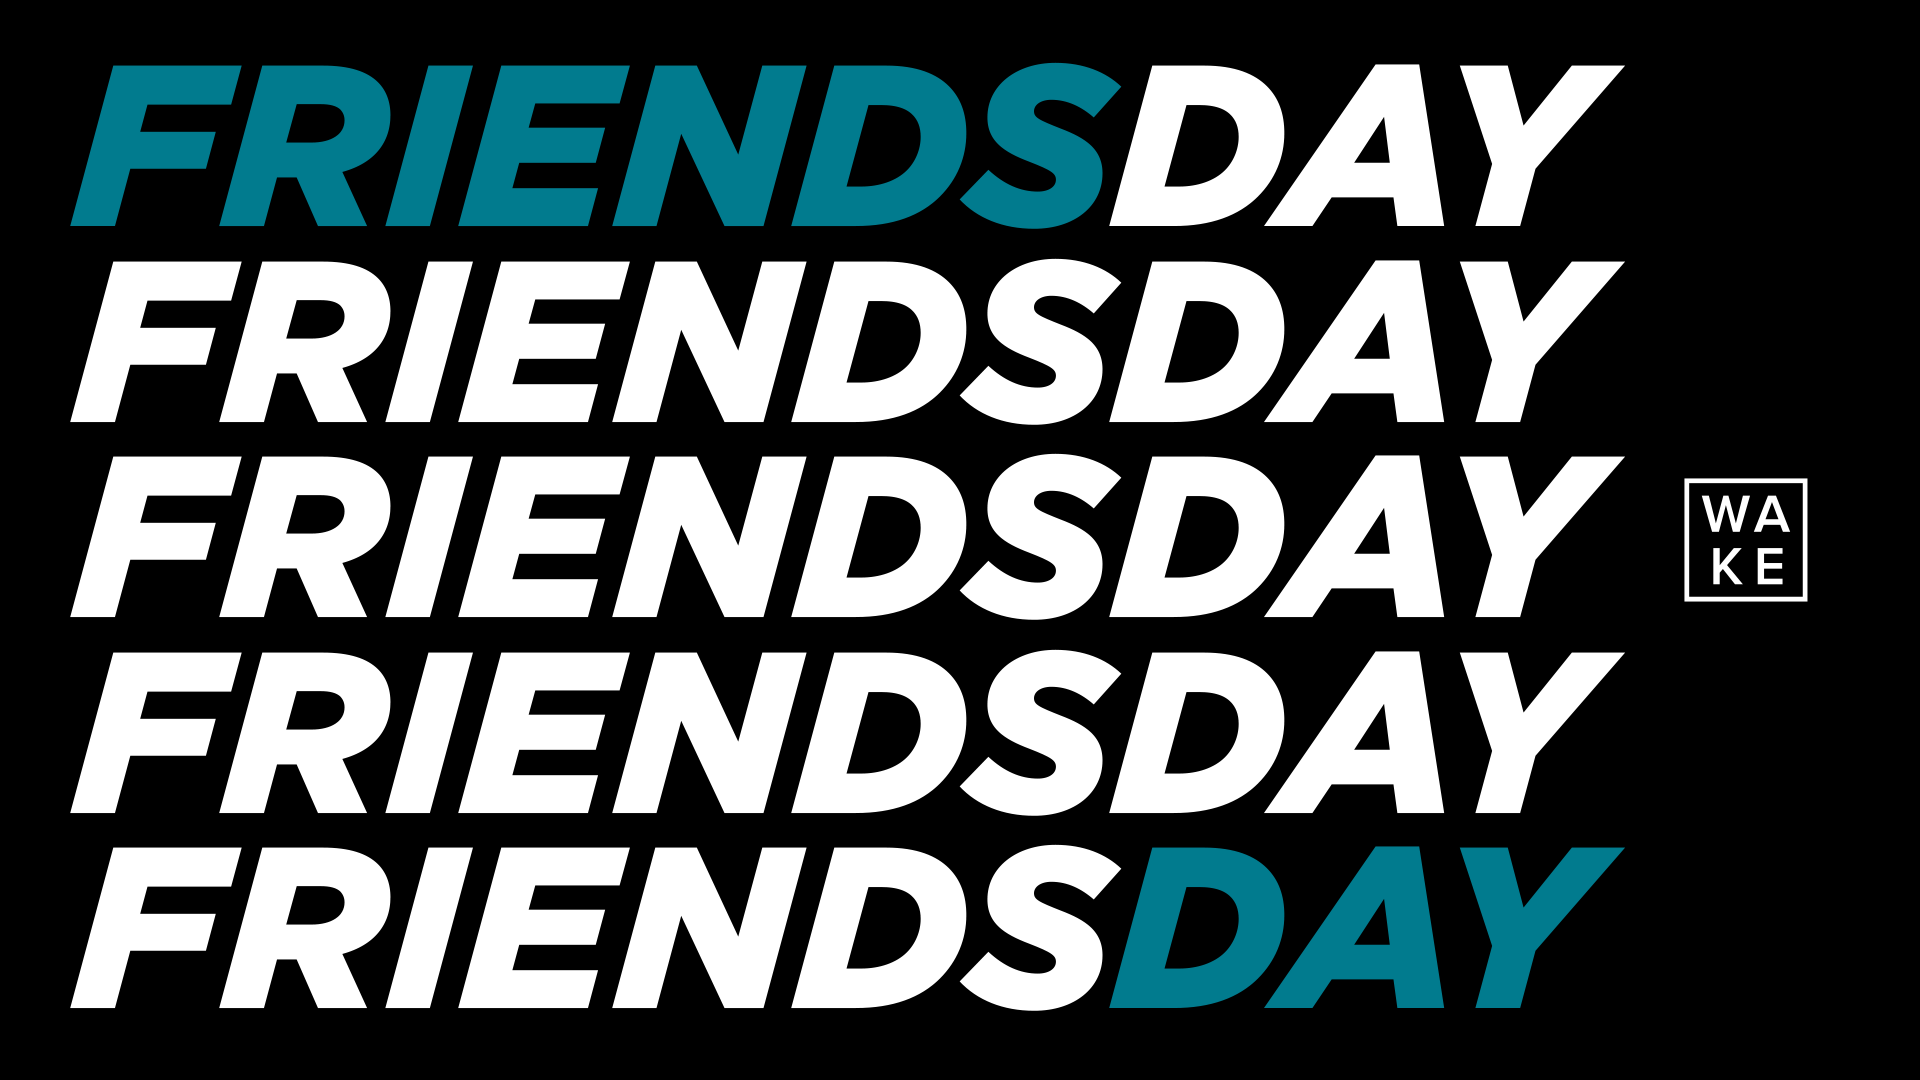 FriendsDay_SeriesArtboard-1-copy-2.png